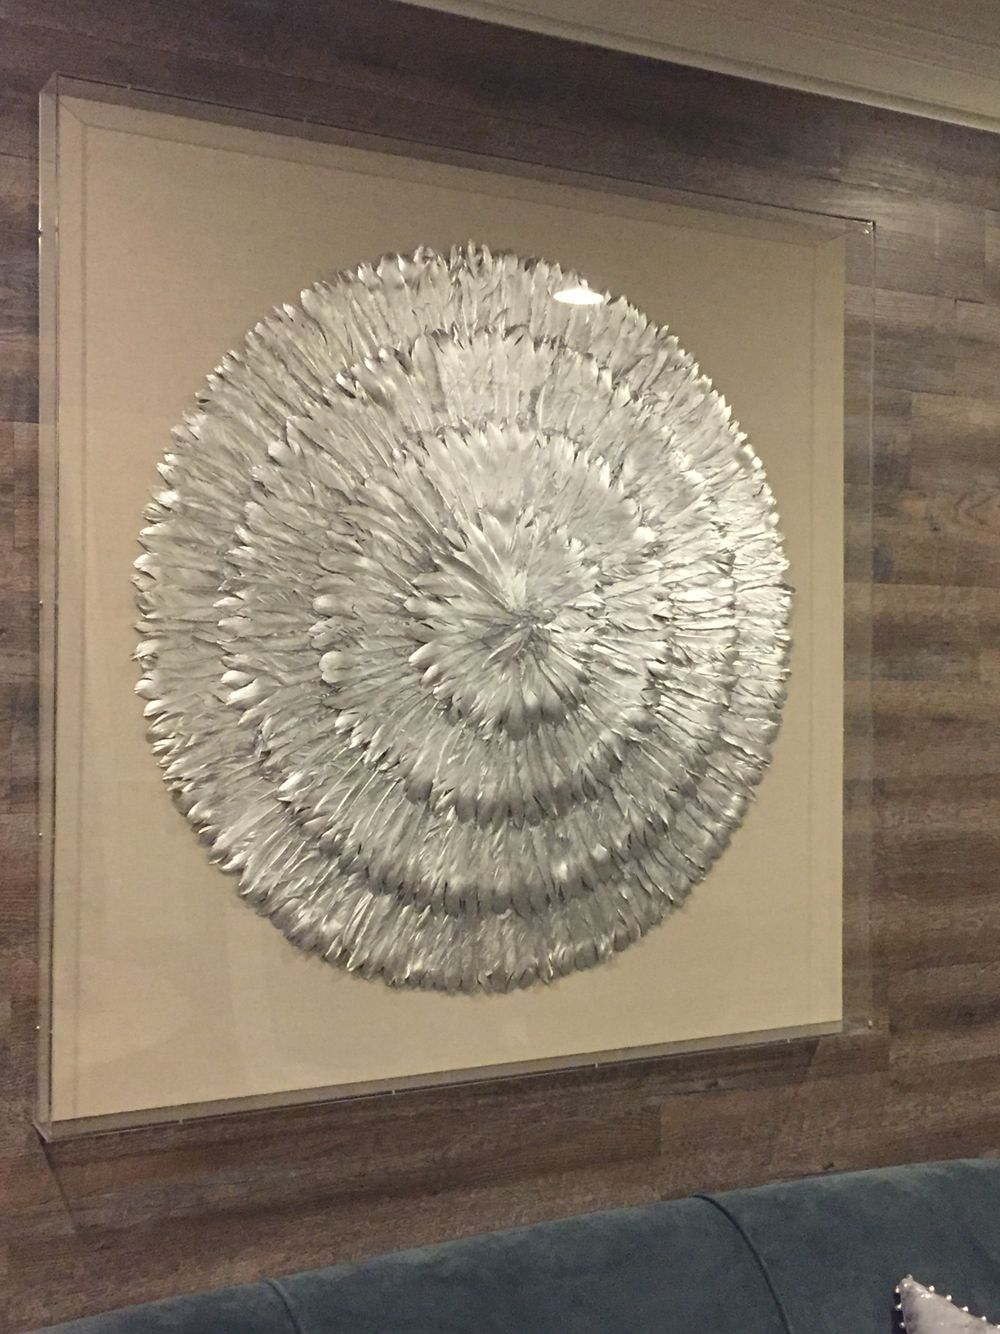 Wall Art Linen With Silver Flower Made Of Feathers Under